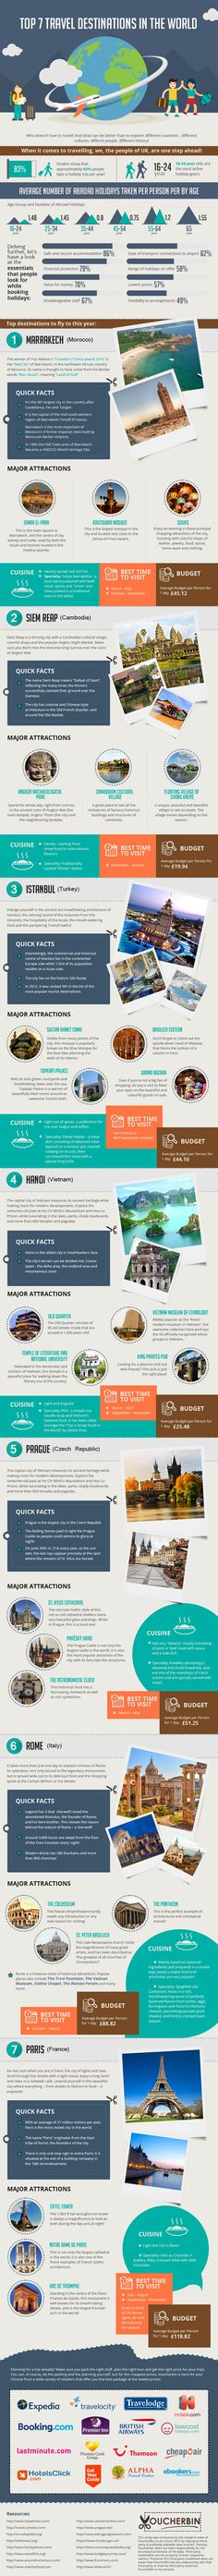 Top 7 Travel Destinations in the World #infographic #Travel